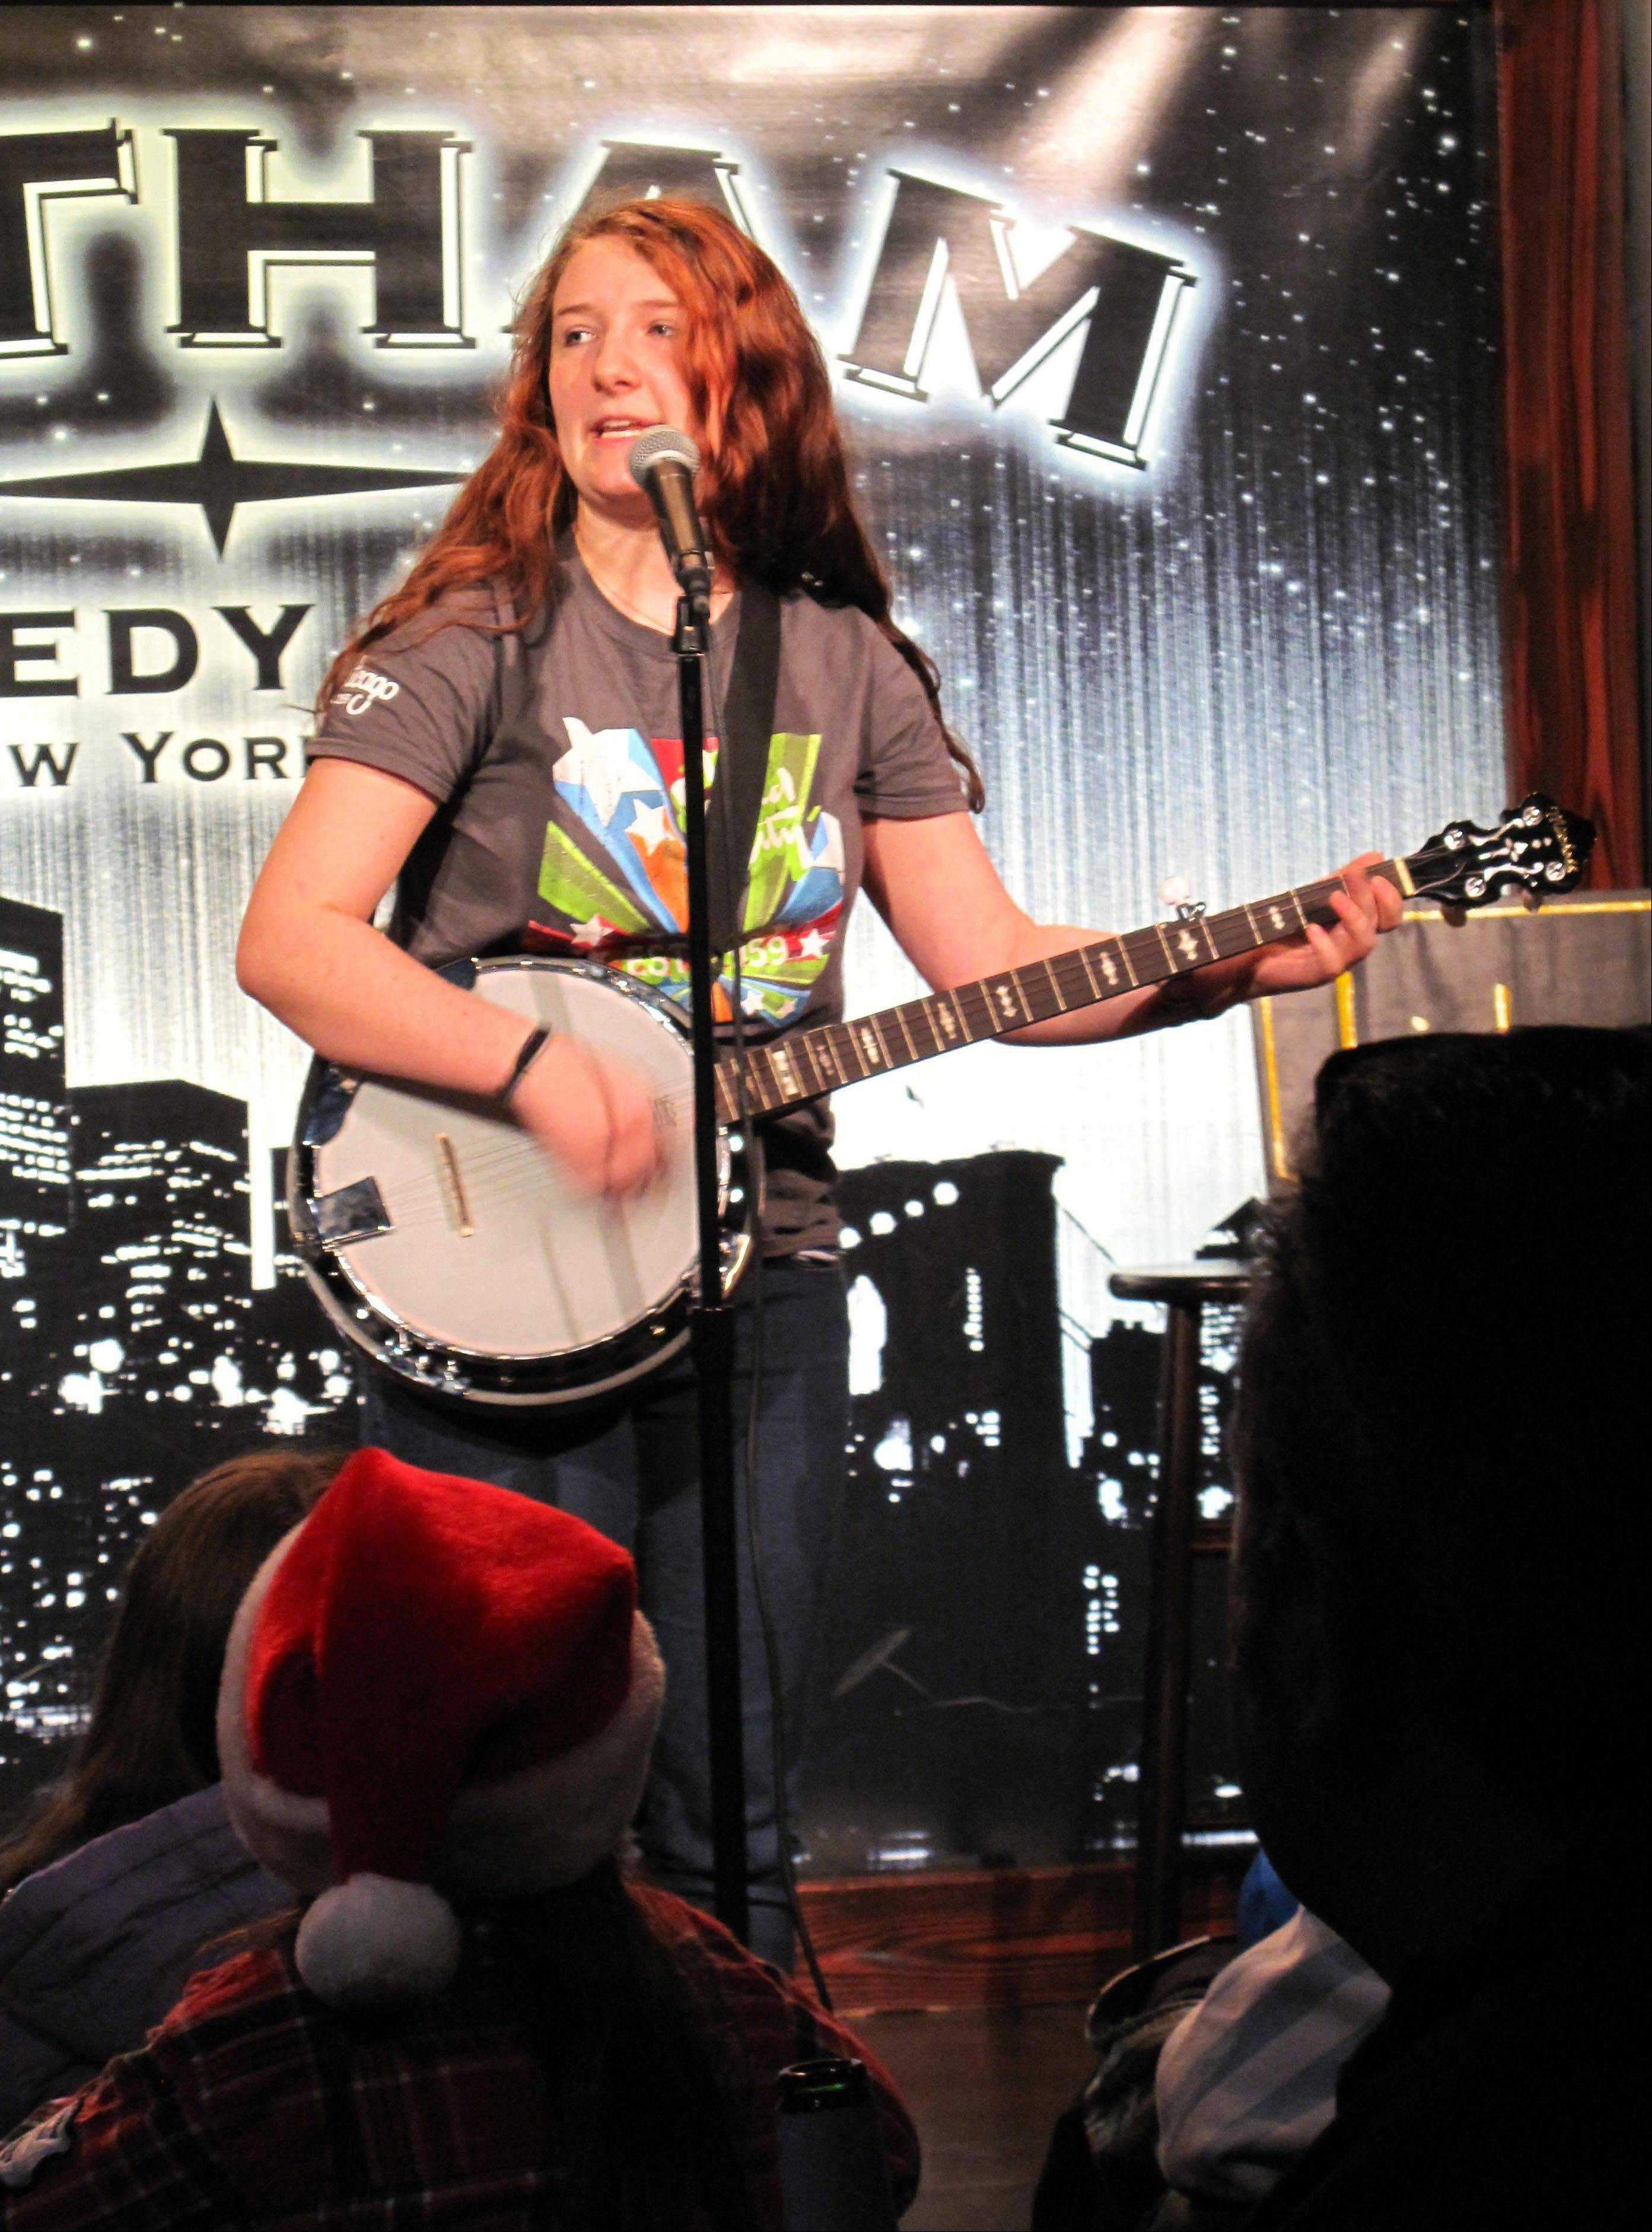 Teenage comedian Val Bodurtha plays banjo and sings a song chastising classmates who tout views on social issues and politics during the �Kids �N Comedy� show at the Gotham Comedy Club in New York.